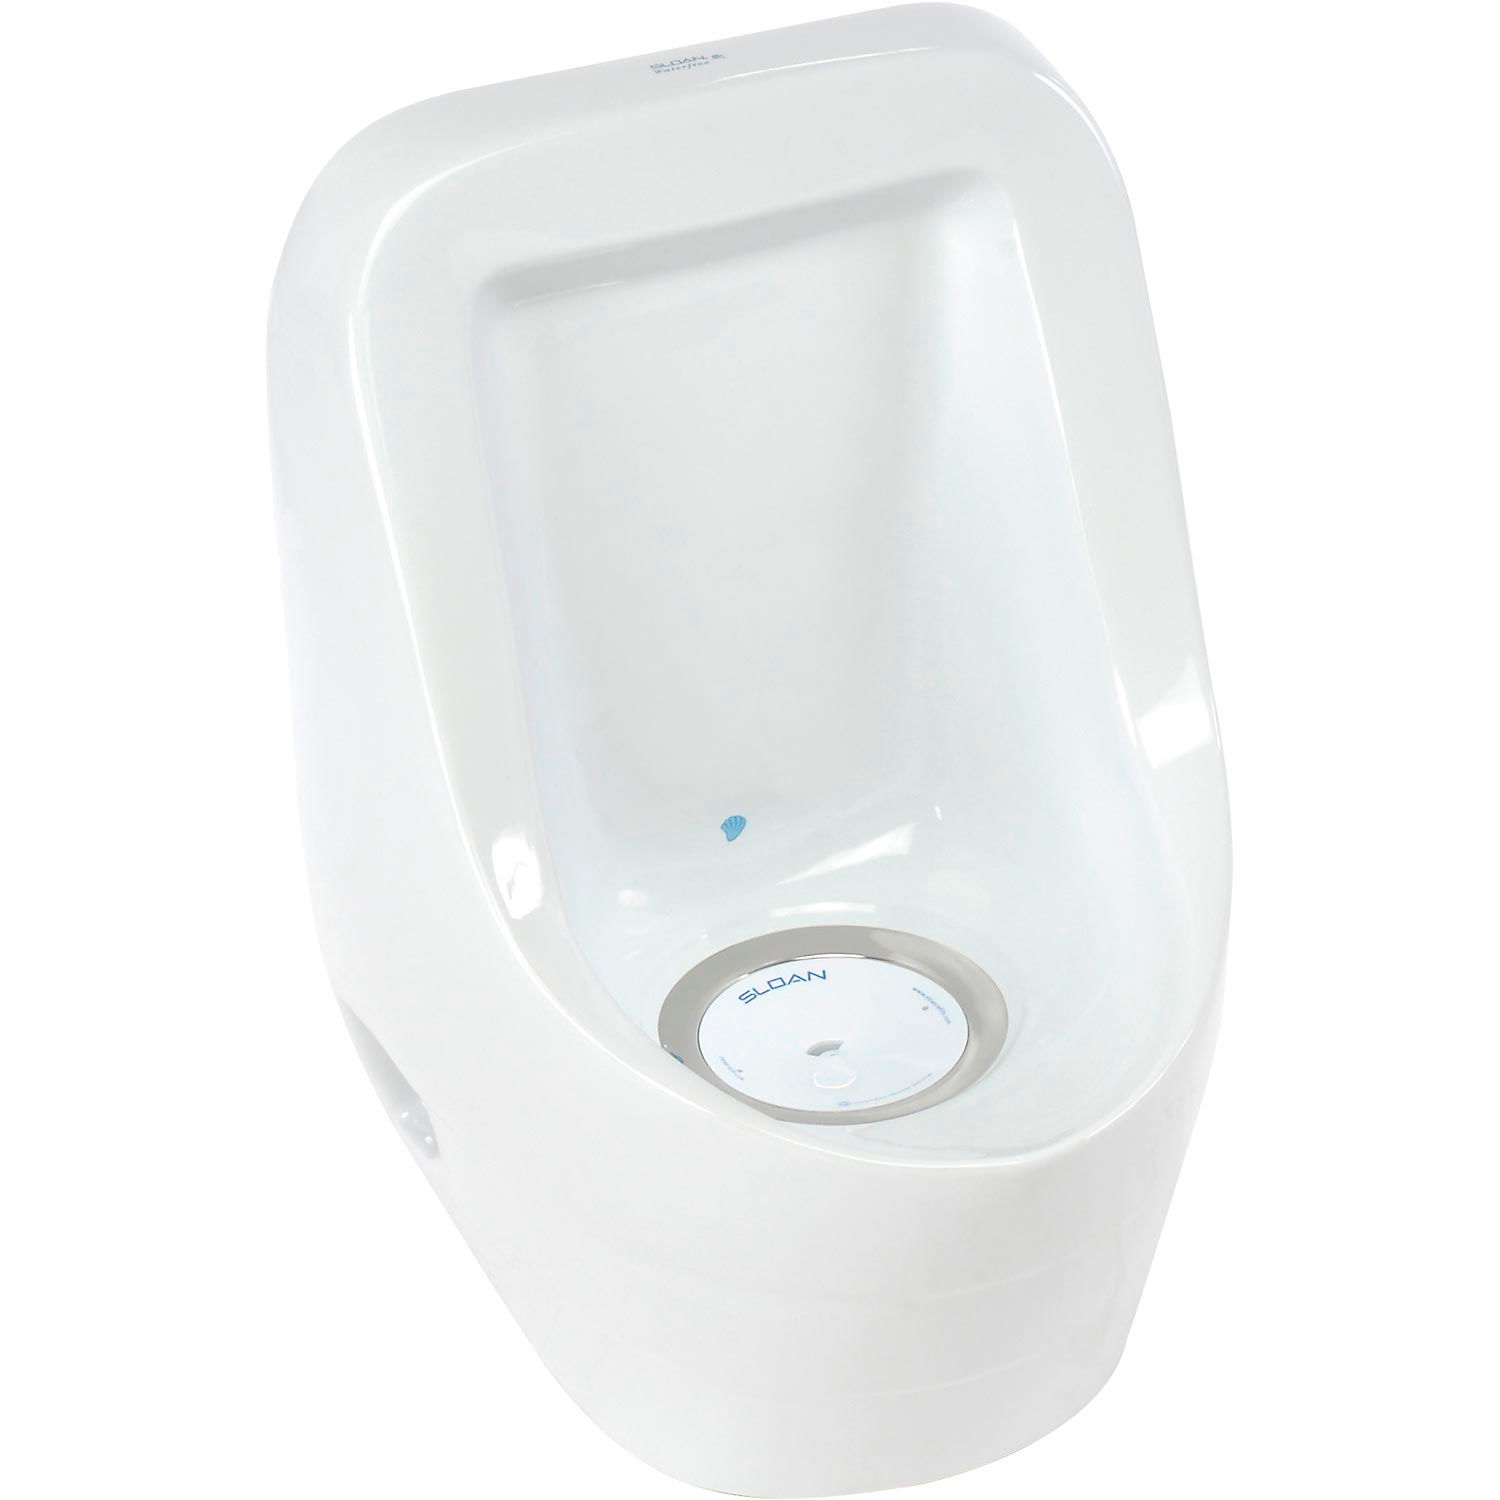 Toilets Urinals Sloan Wes 4000 Waterless